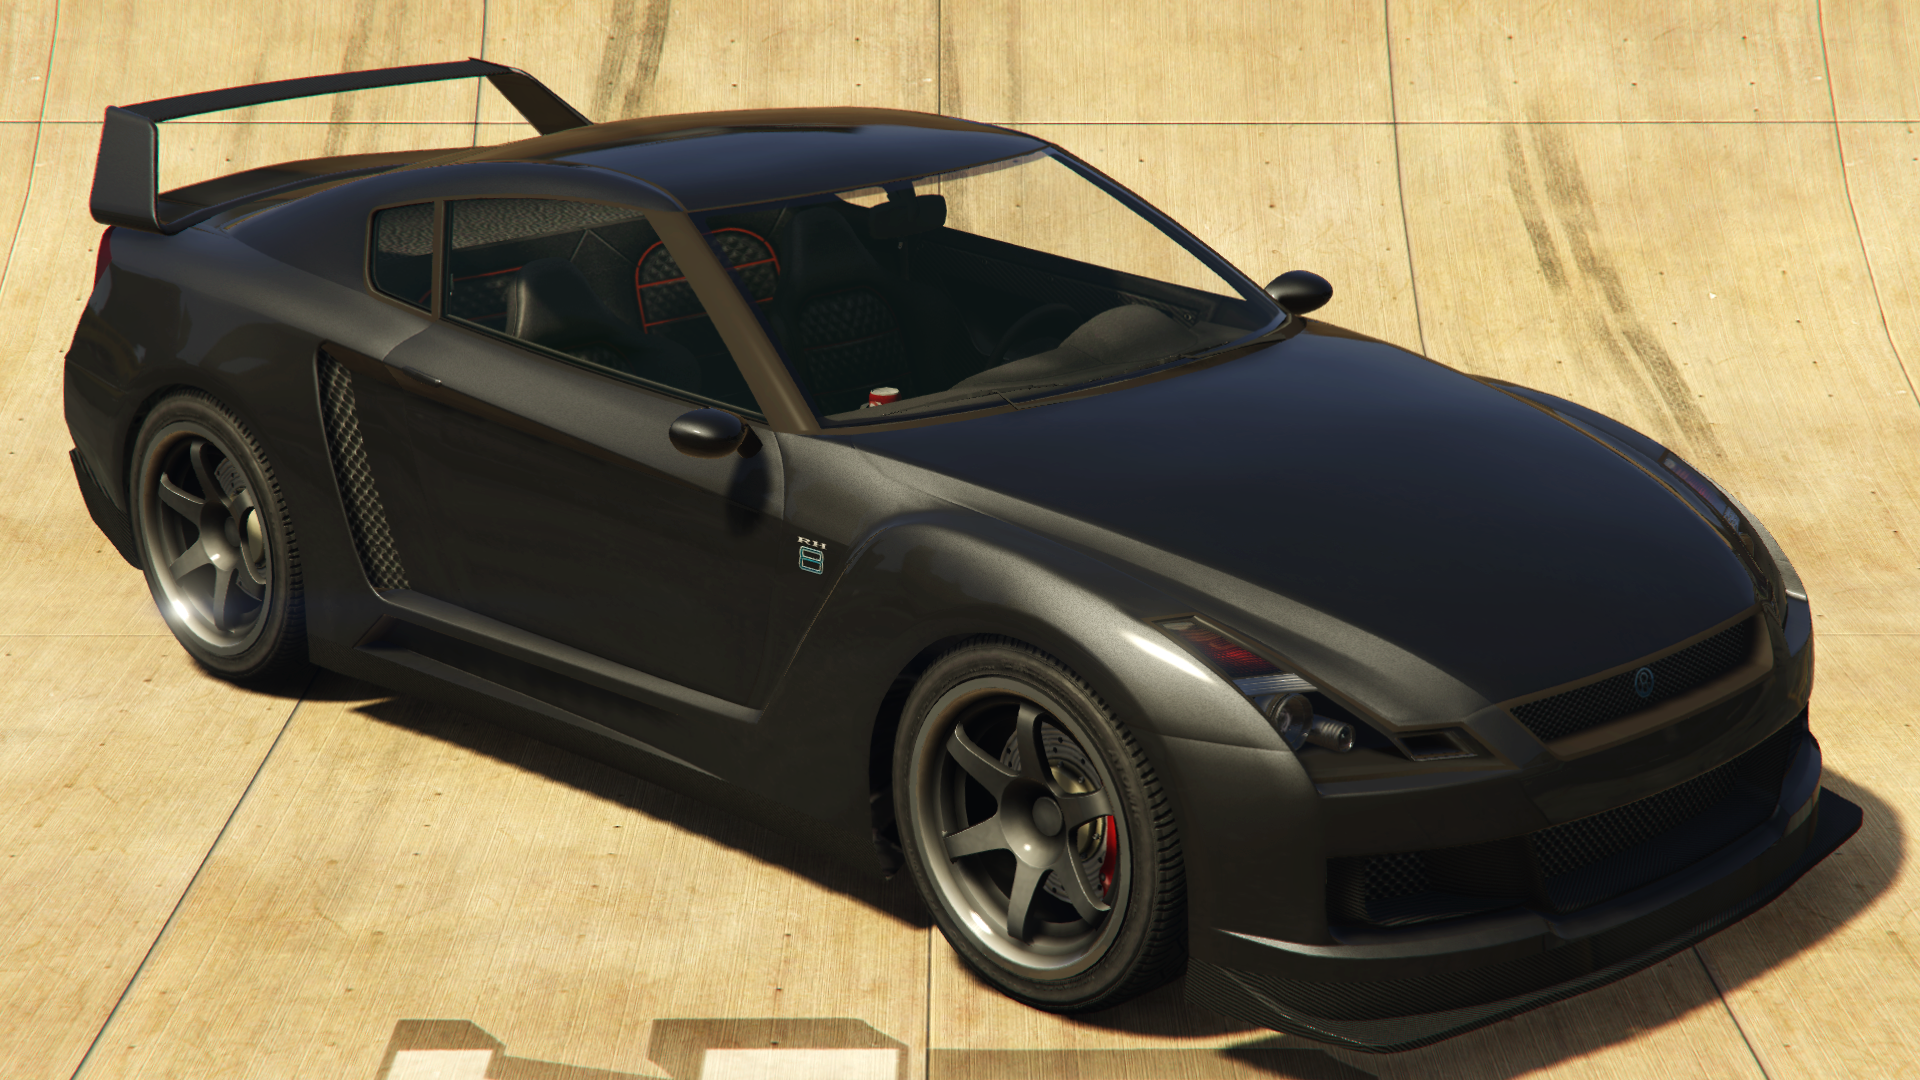 Elegy RH8 | GTA Wiki | FANDOM powered by Wikia